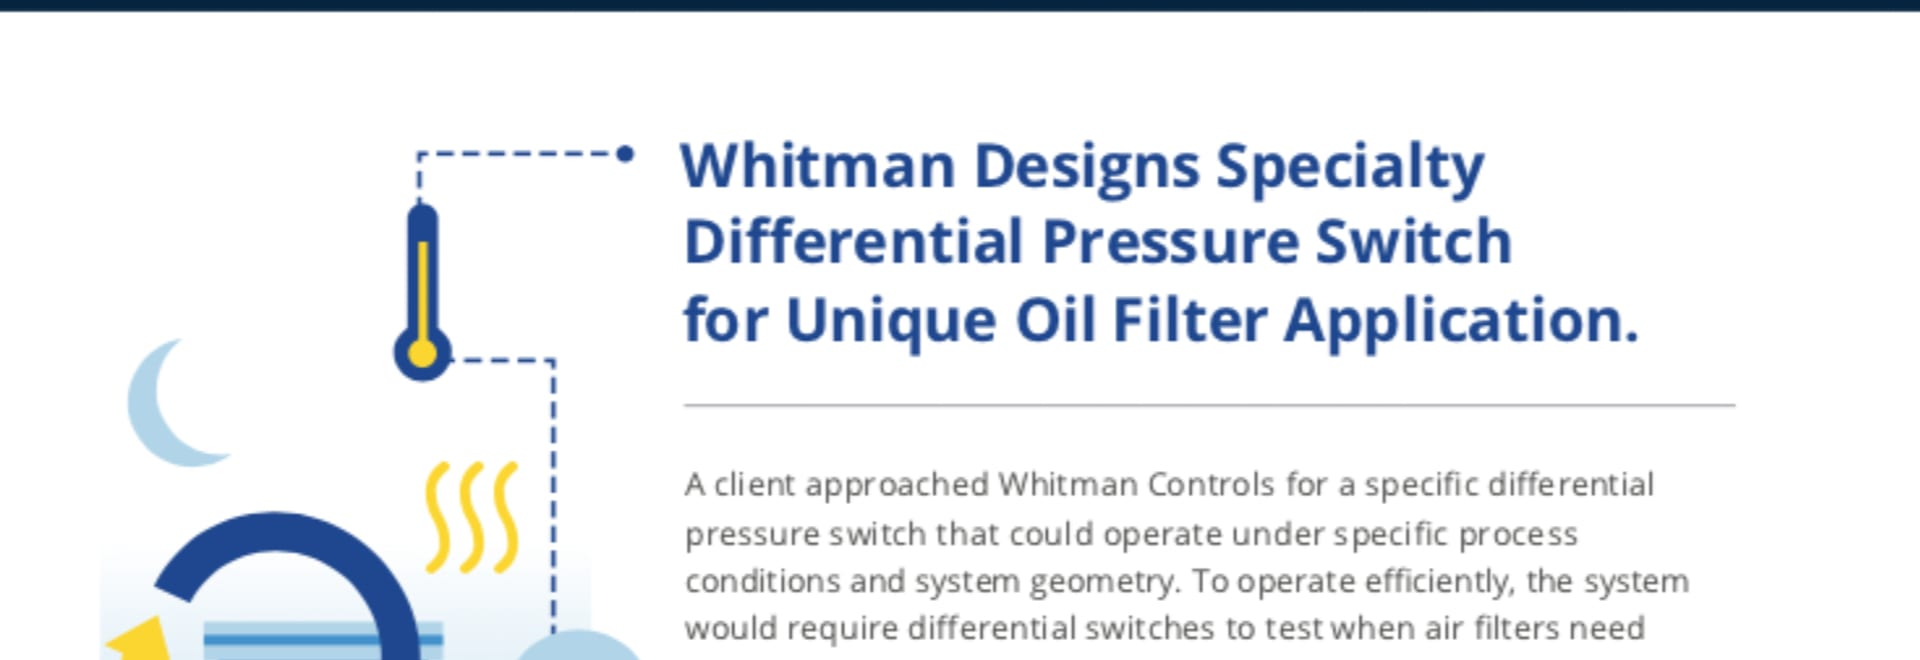 Case Study | Whitman Designs Specialty Differential Pressure Switch for Unique Oil Filter Application